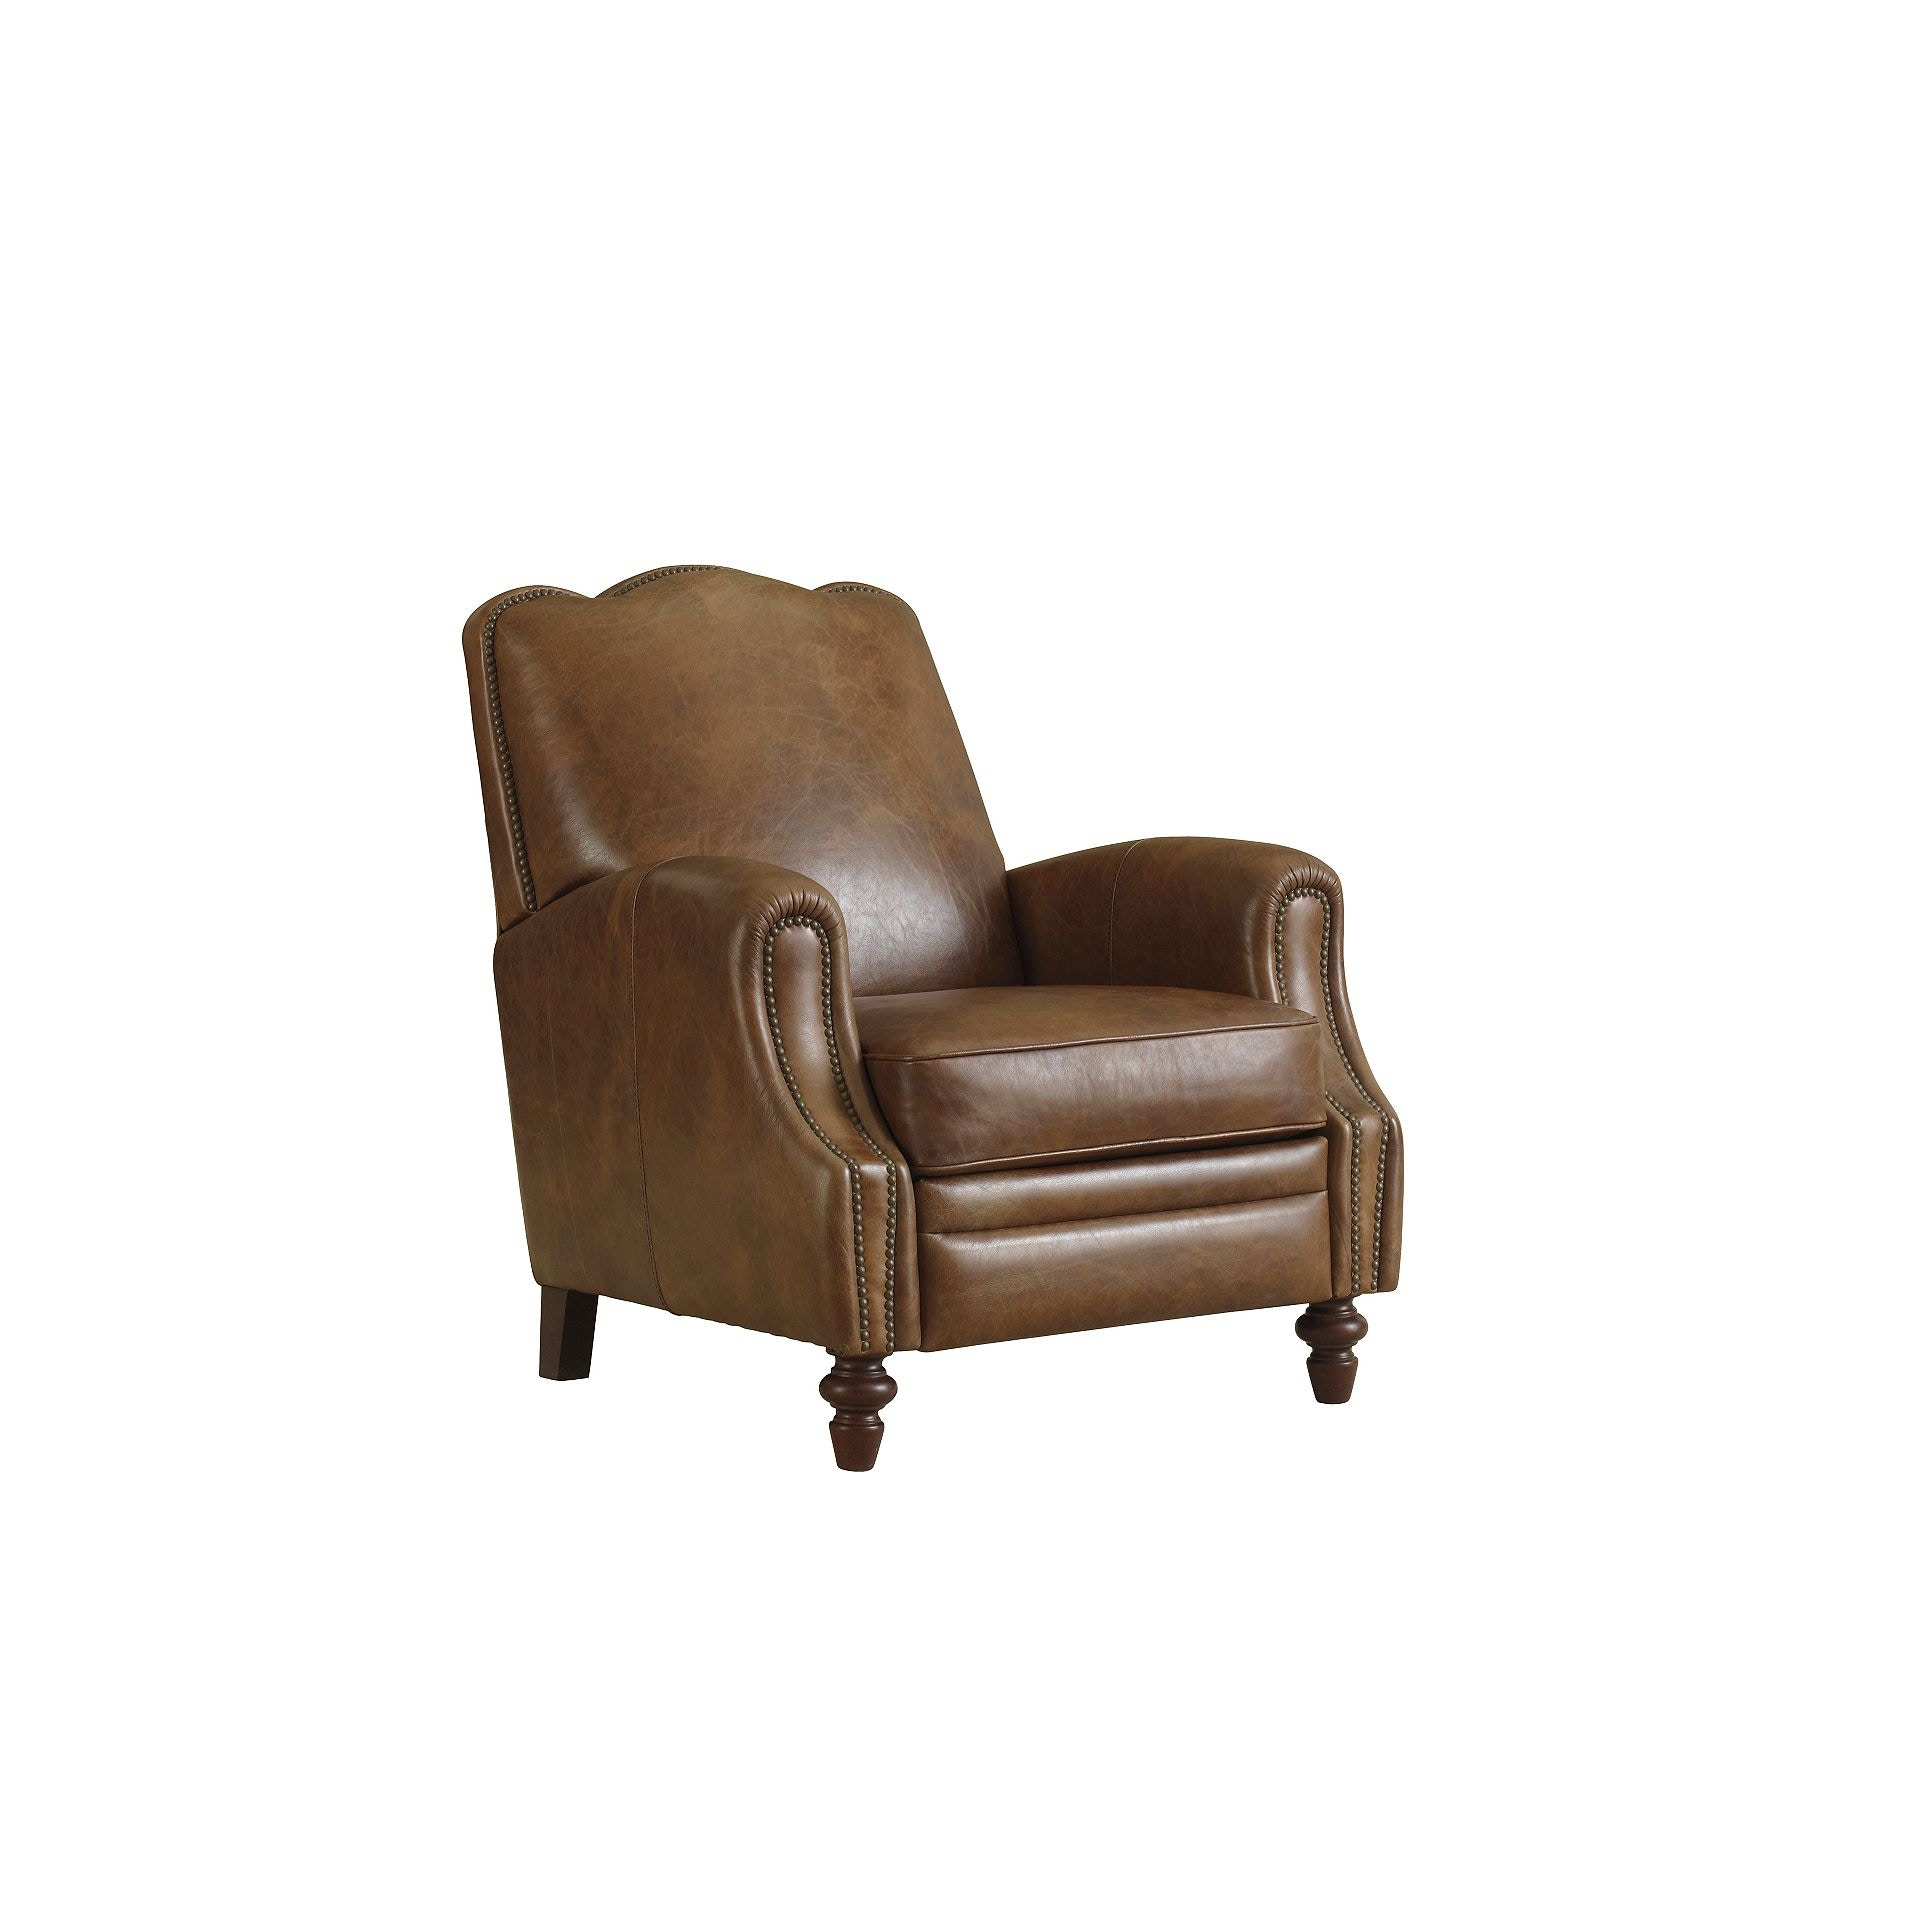 High Quality Henredon Furniture Henredon Leather Company Caspien Recliner IL8819 RE